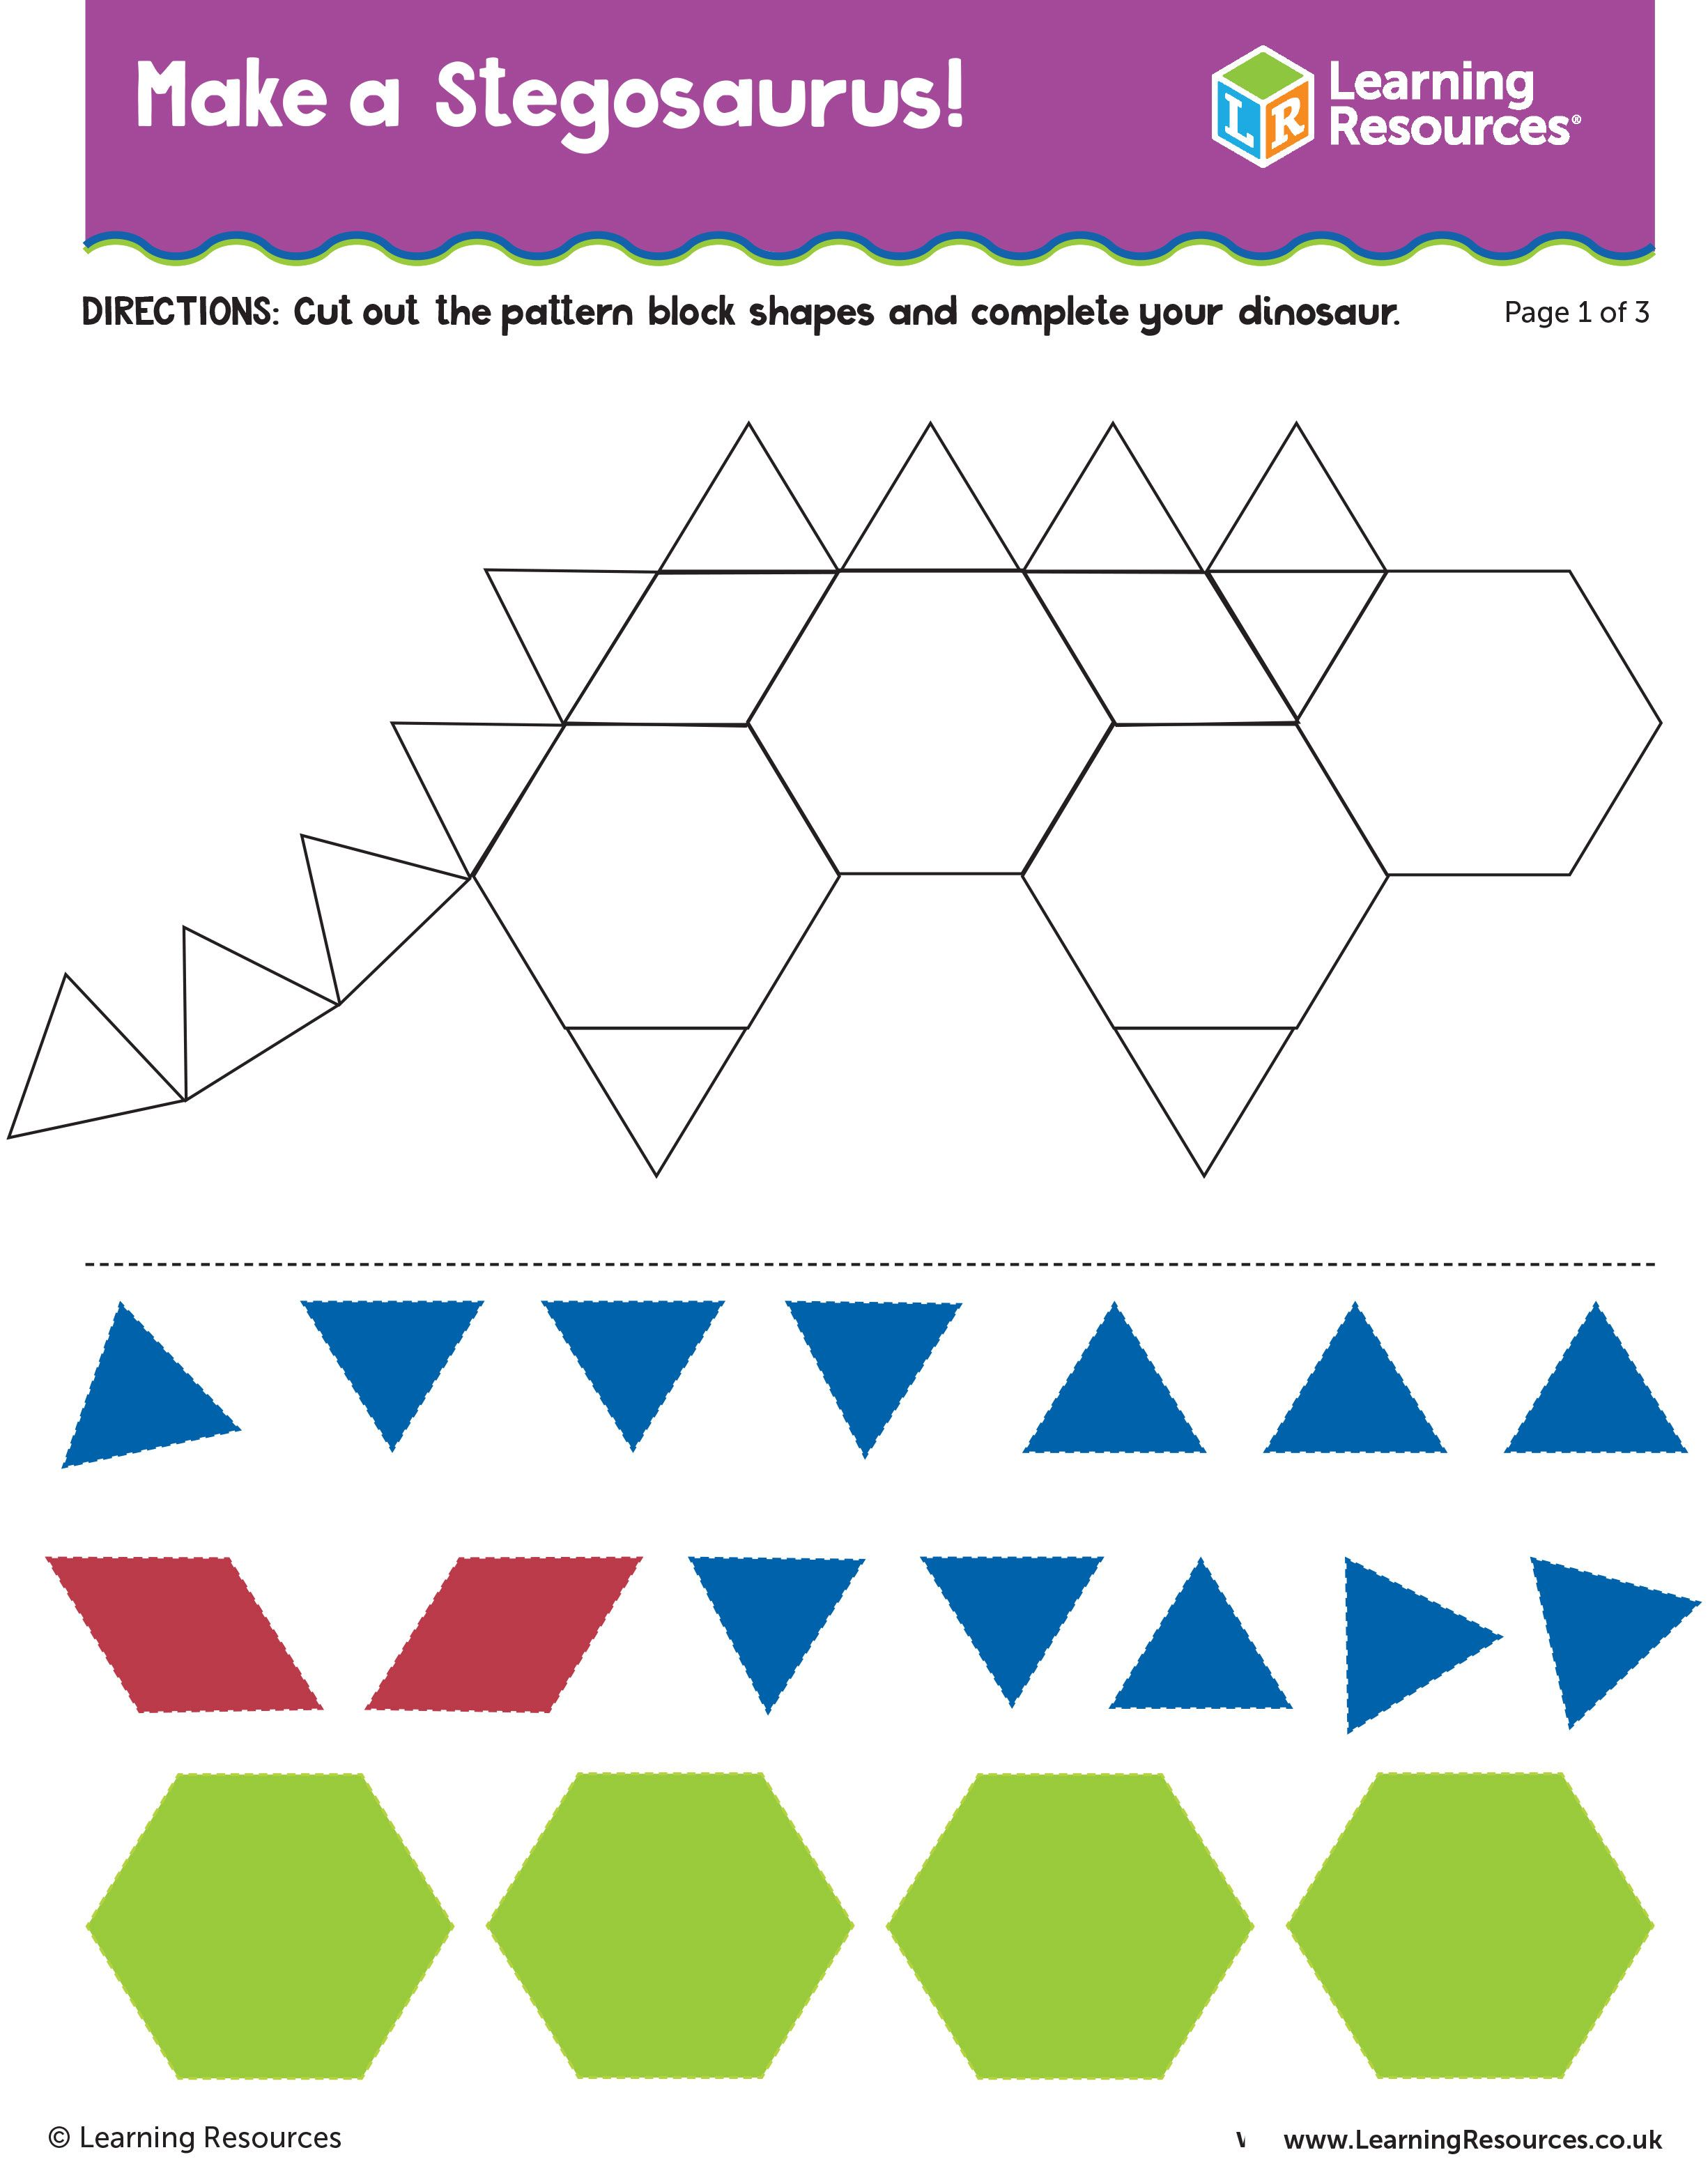 Dino Patterns Pattern Blocks Make a Stegosaurus ActivitySheet